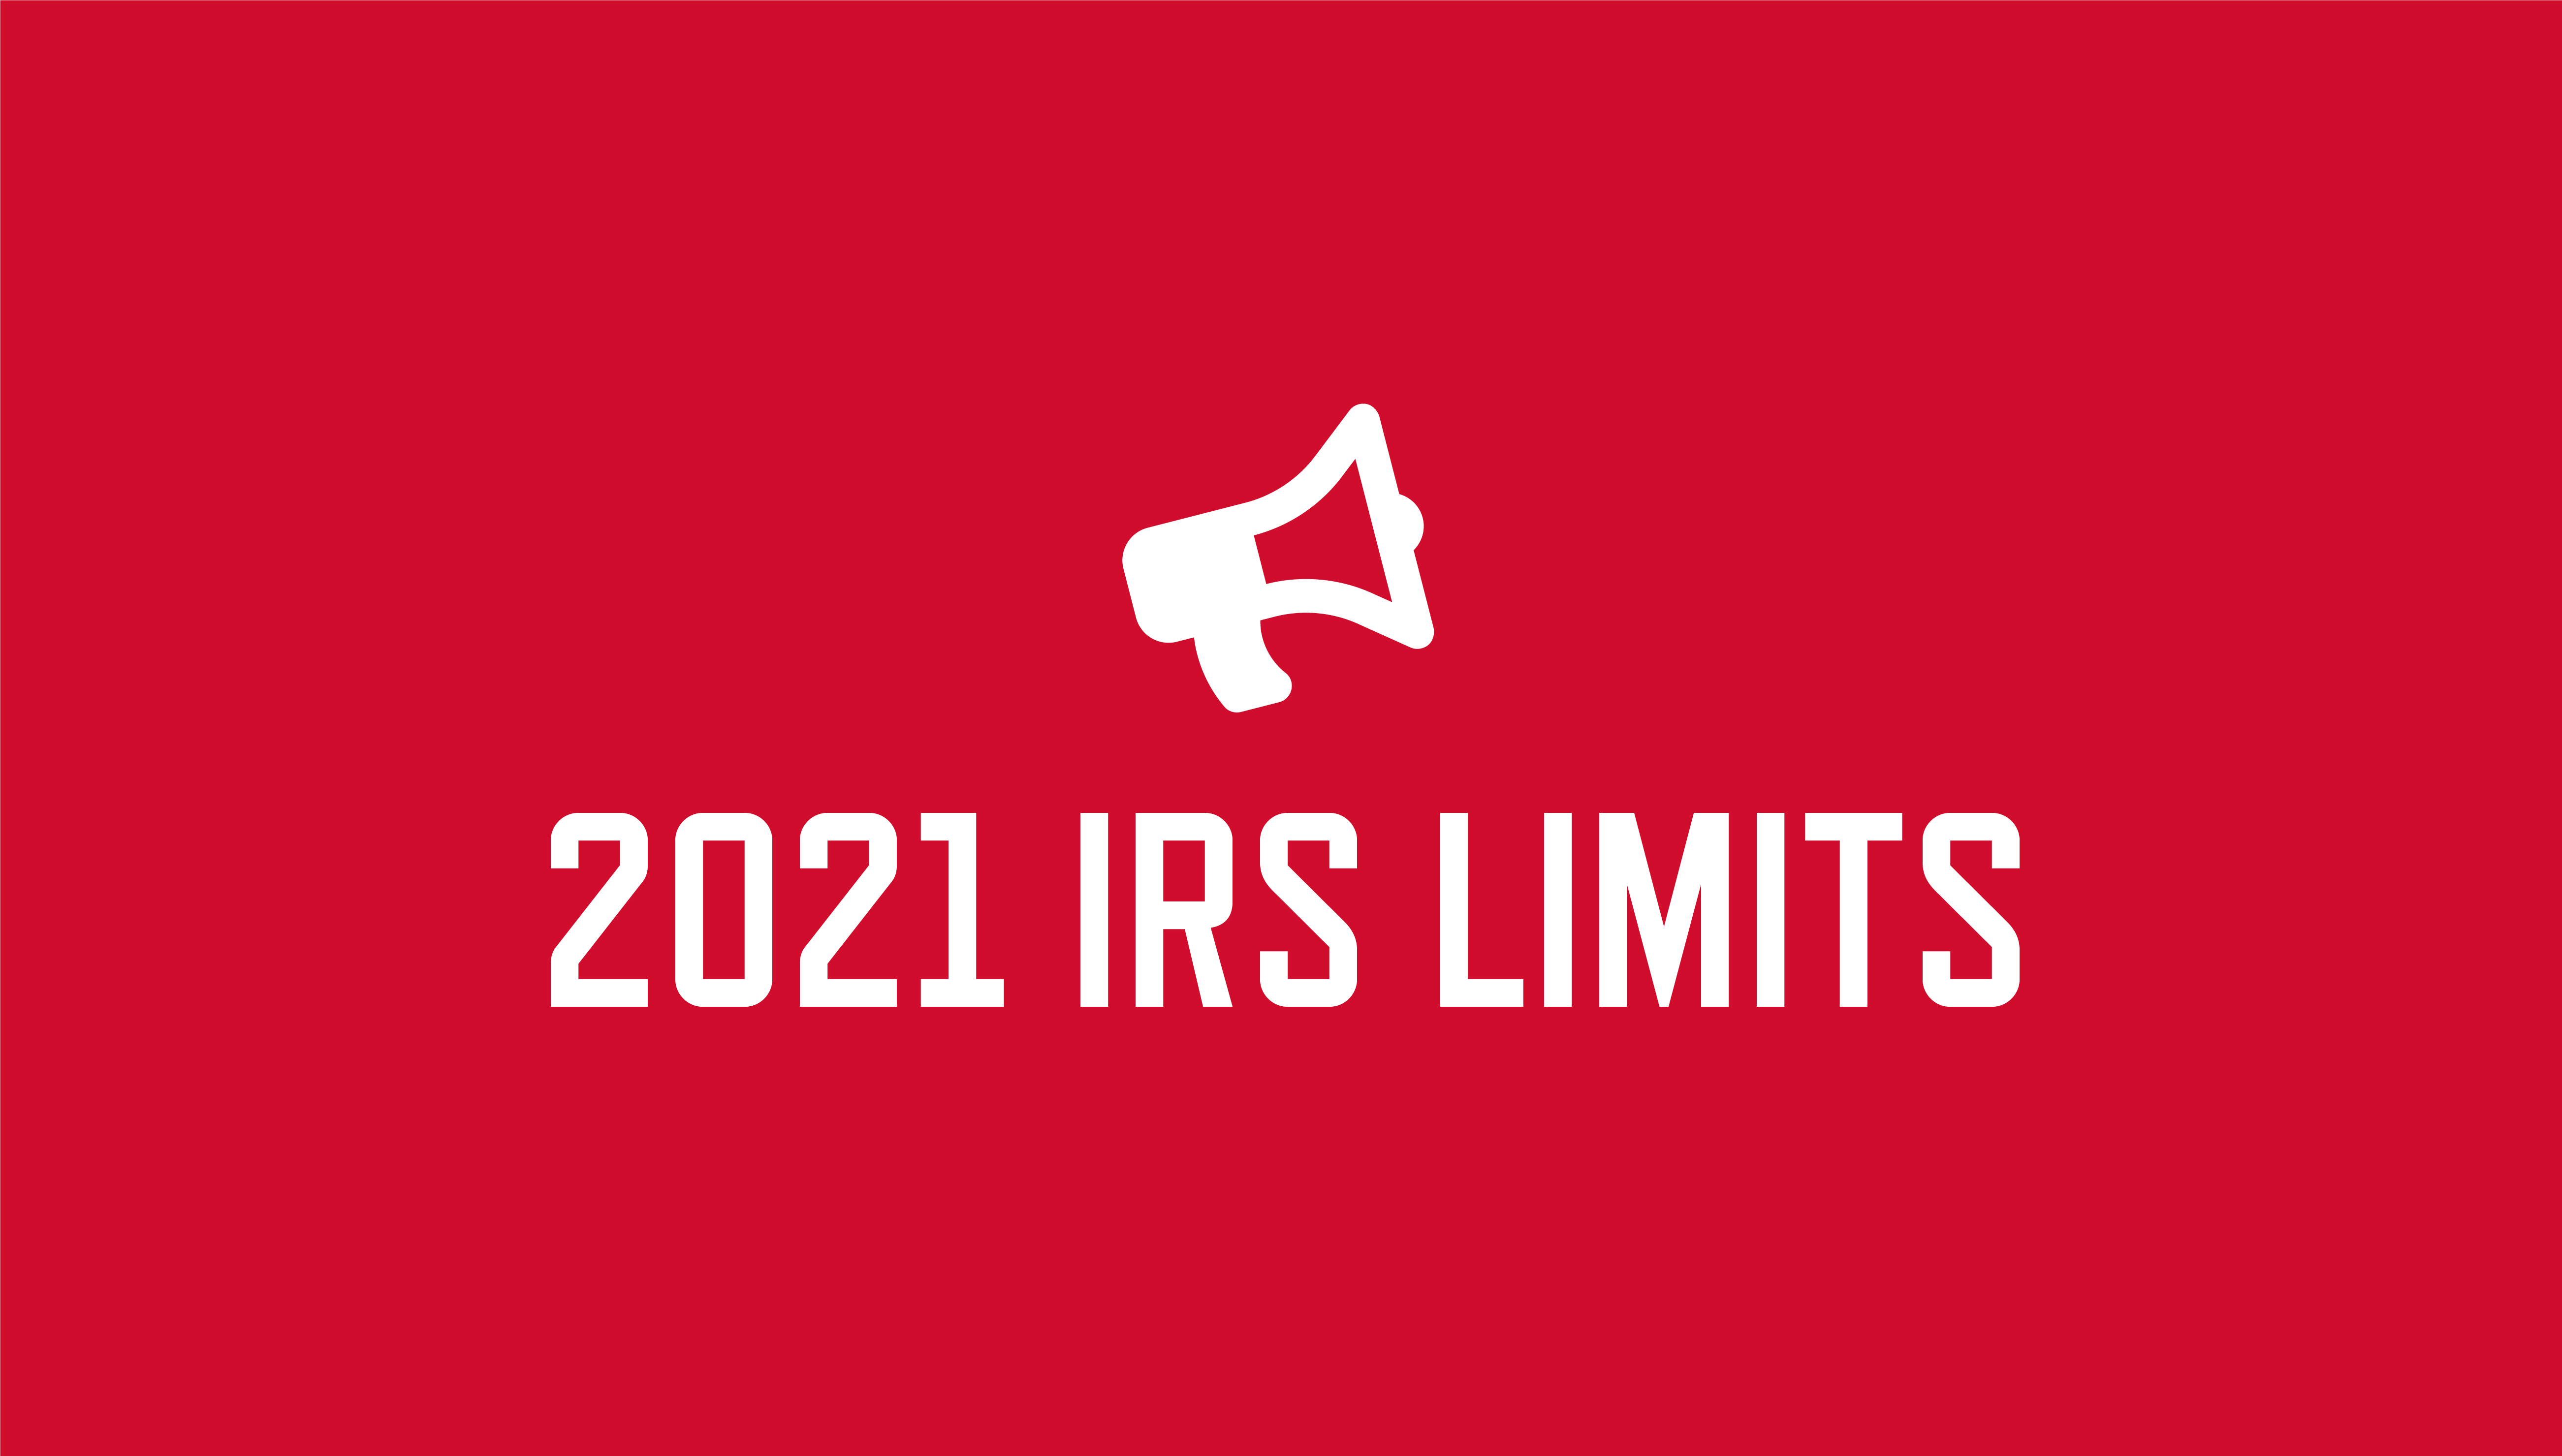 Graphic with red background, speaker icon and text reading 2021 IRS limits